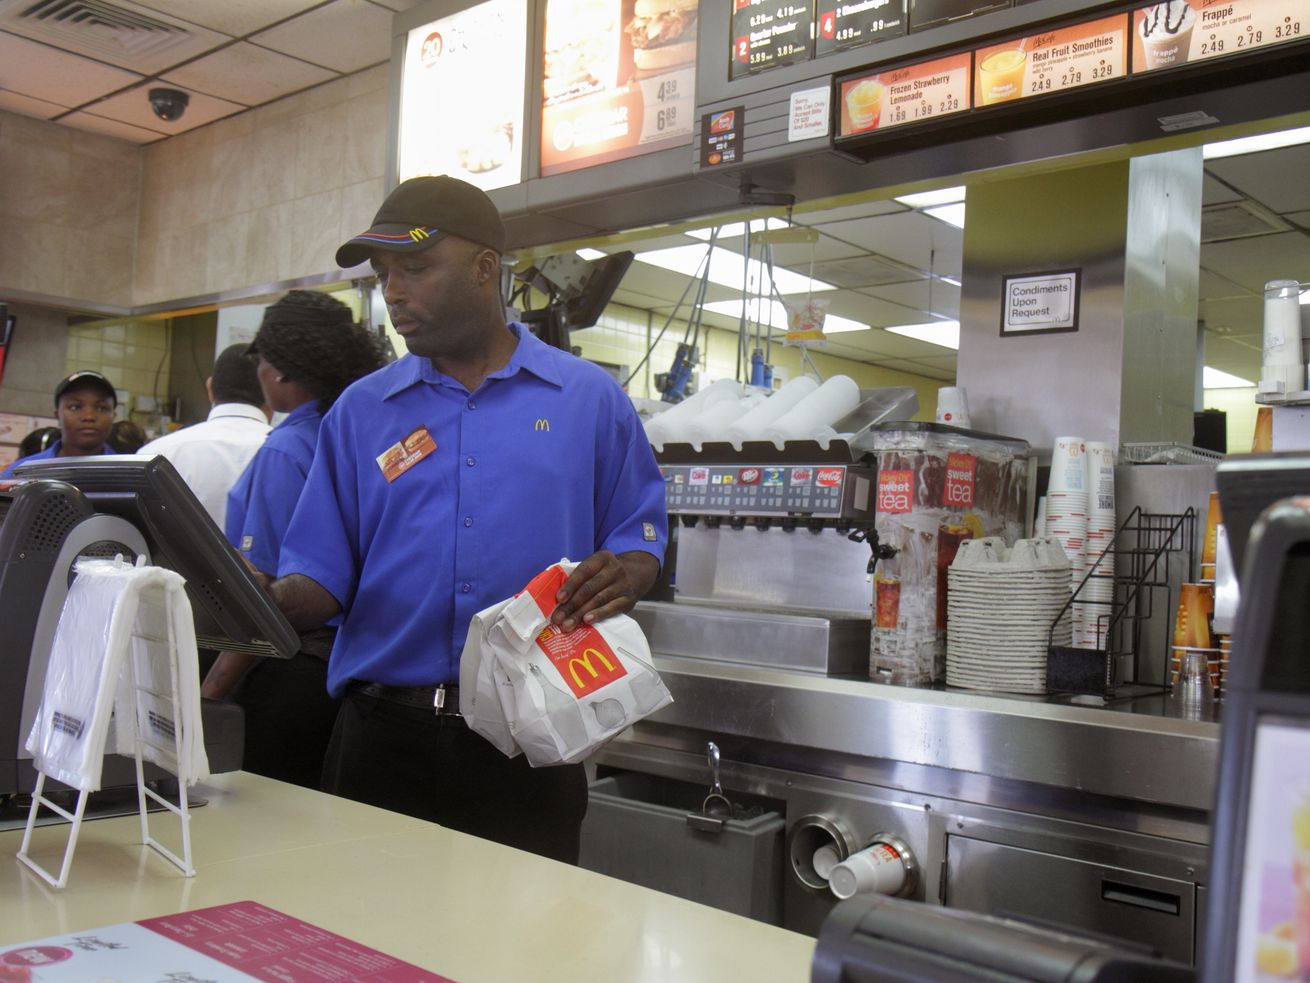 Workers in a Miami McDonald's before the Covid-19 pandemic.